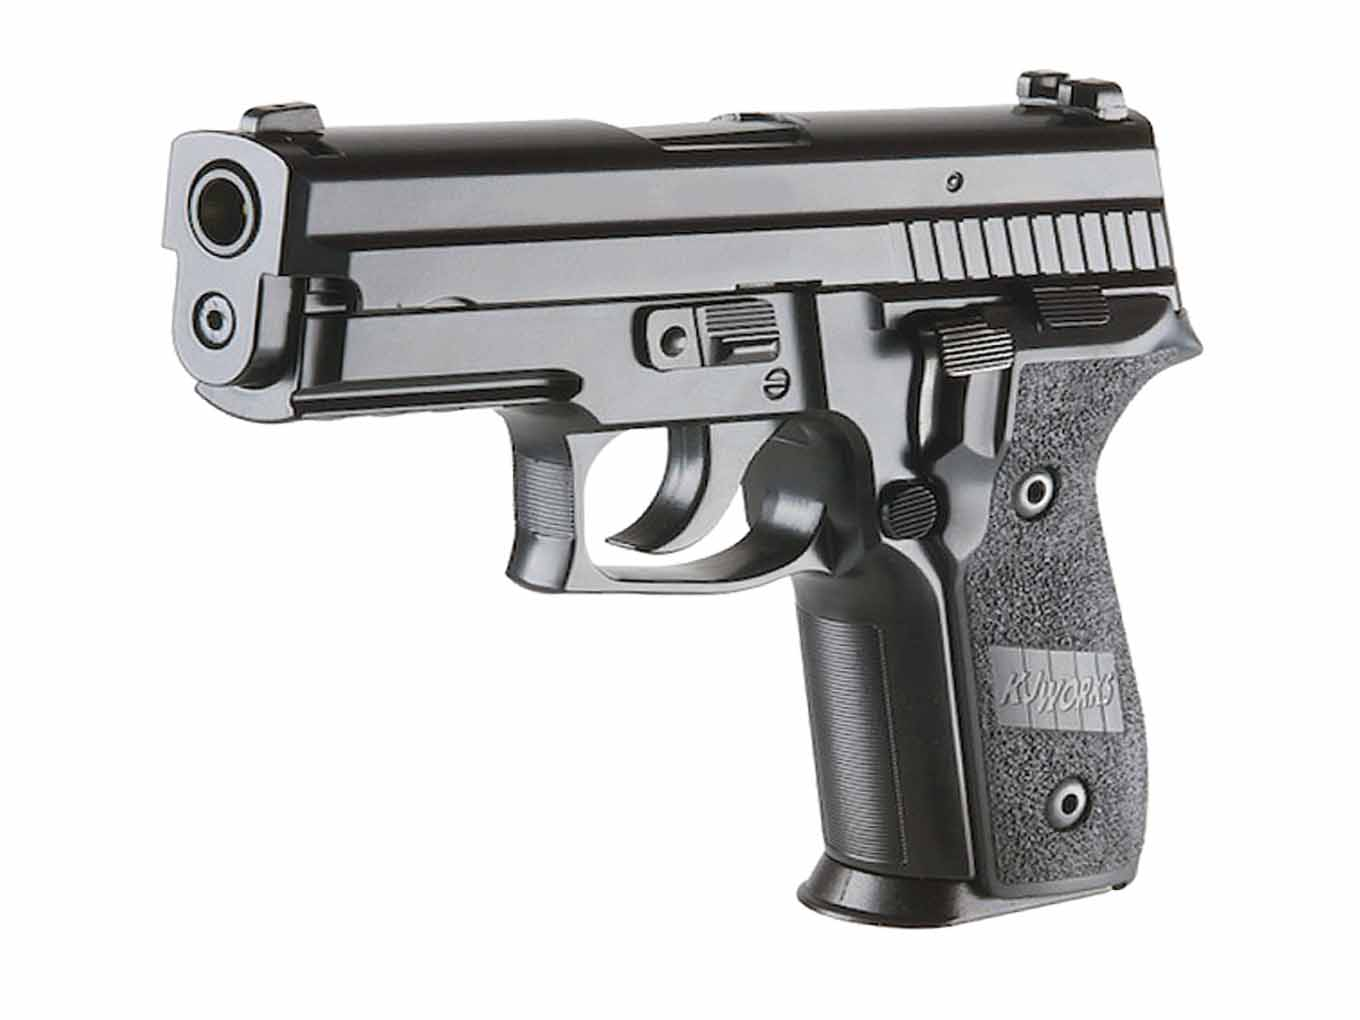 KJW P229 Full Metal Gas Blowback Airsoft Pistol Black